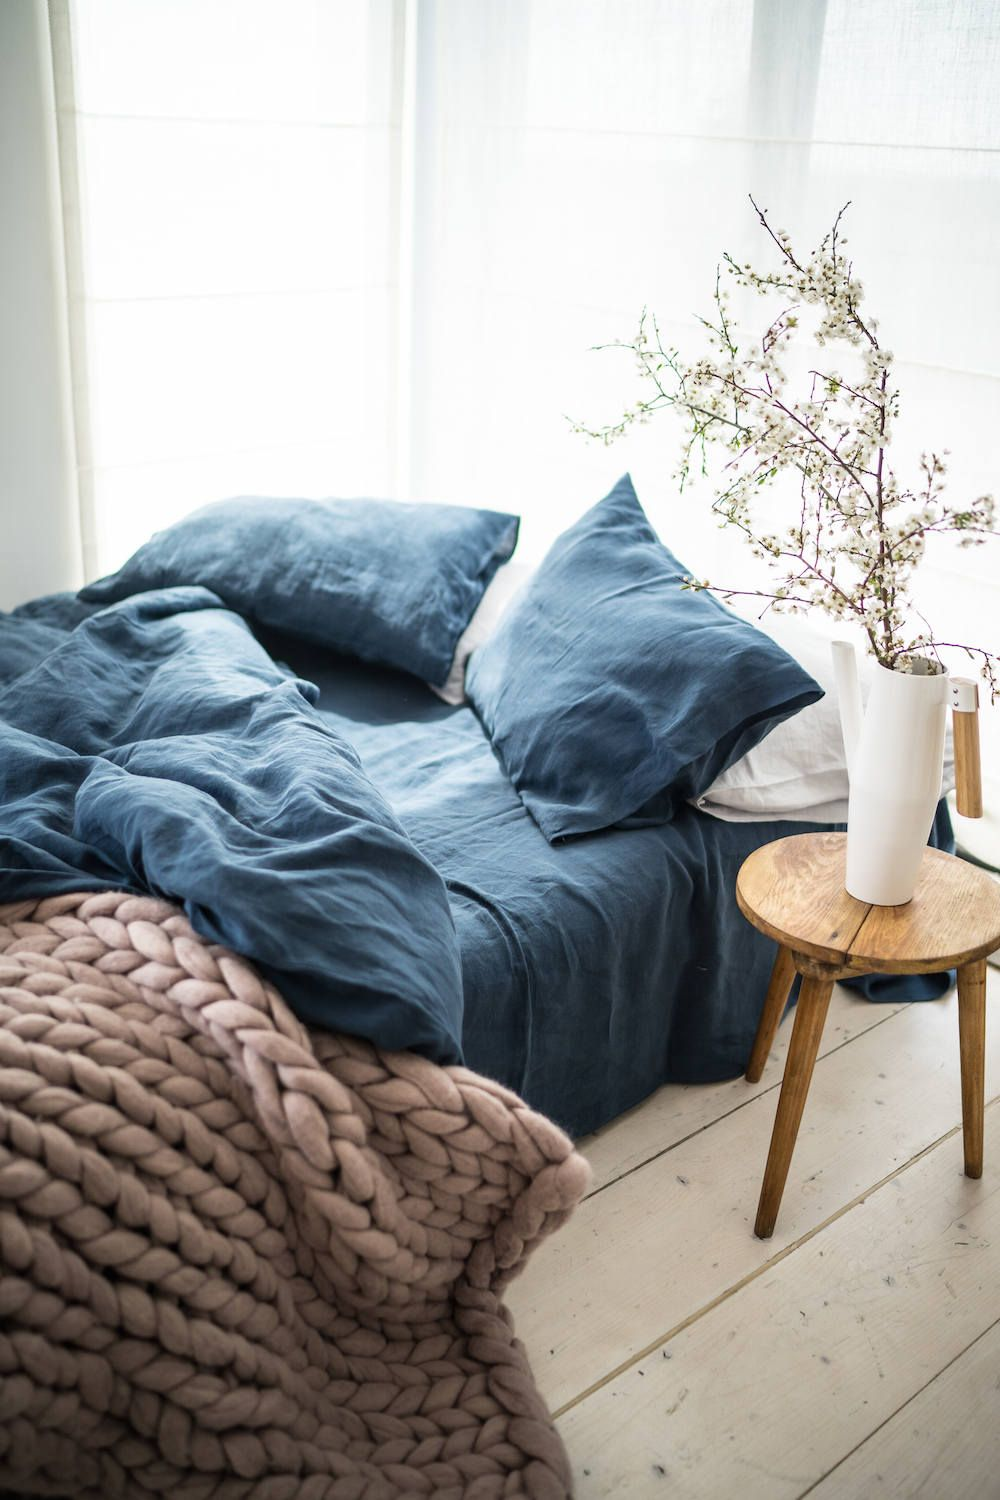 linen duvet cover stonewashed linen softened linen bedding dark blue bedding en 2019 id es d co. Black Bedroom Furniture Sets. Home Design Ideas